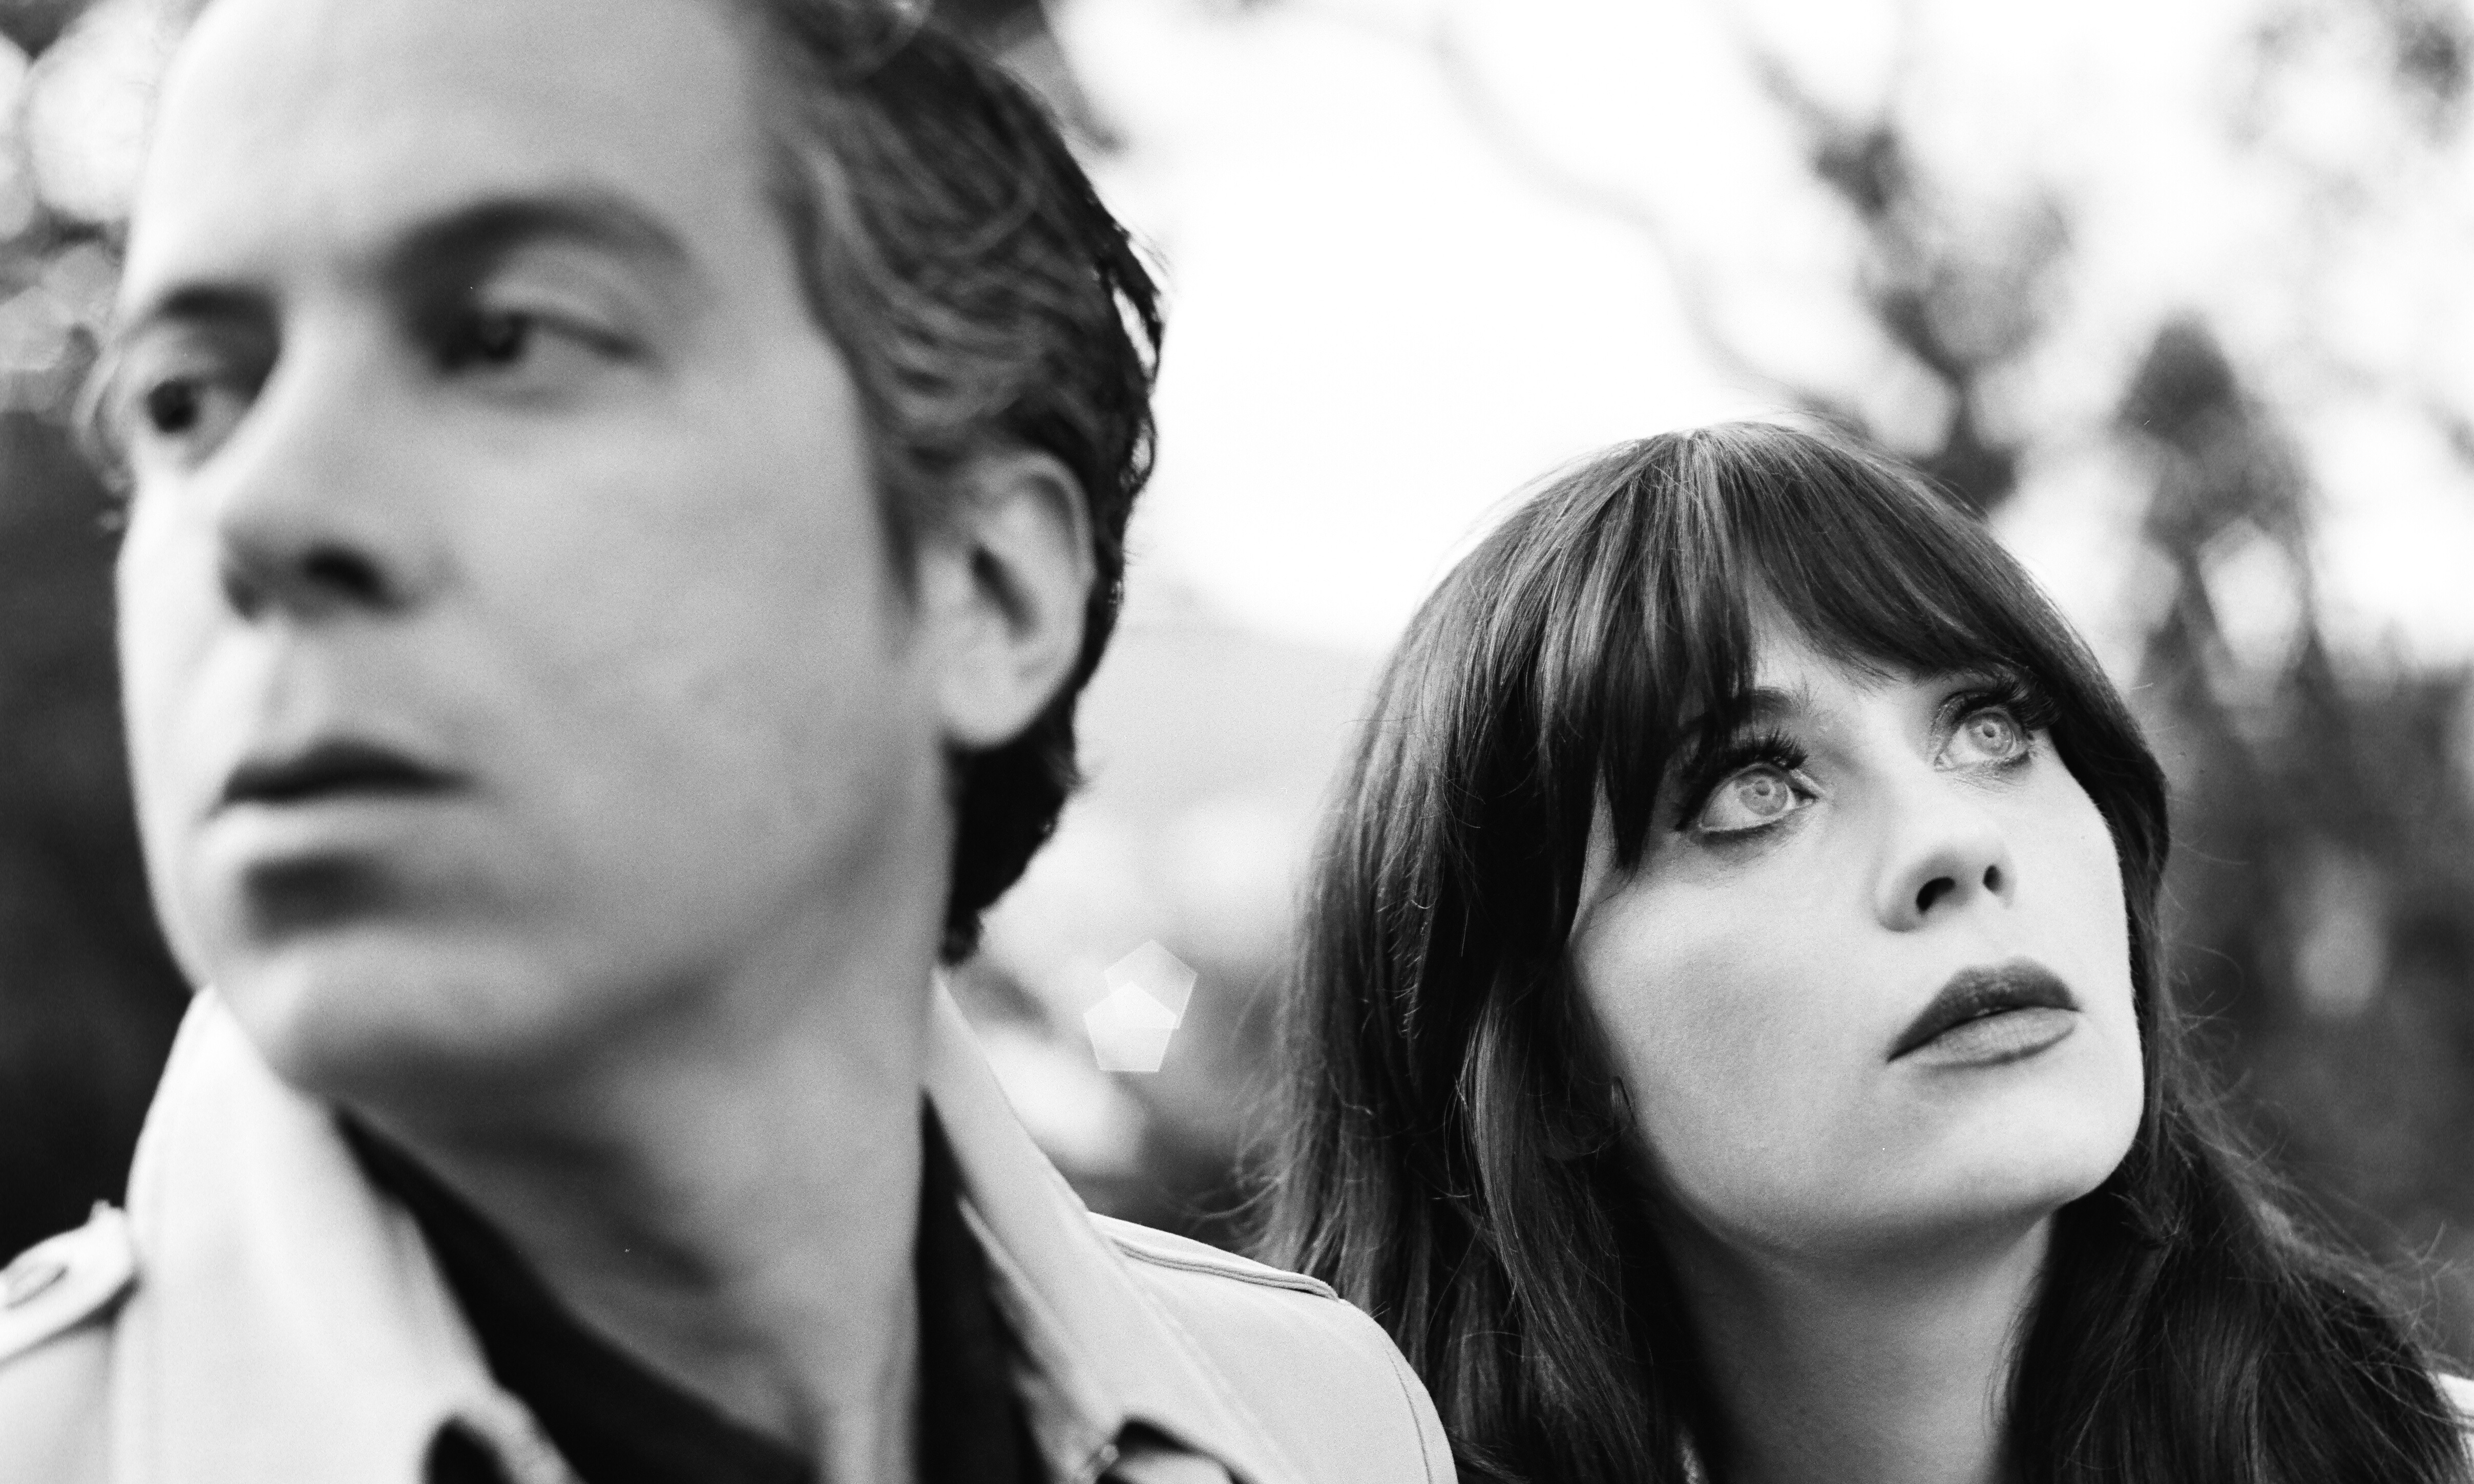 She & Him have a new album